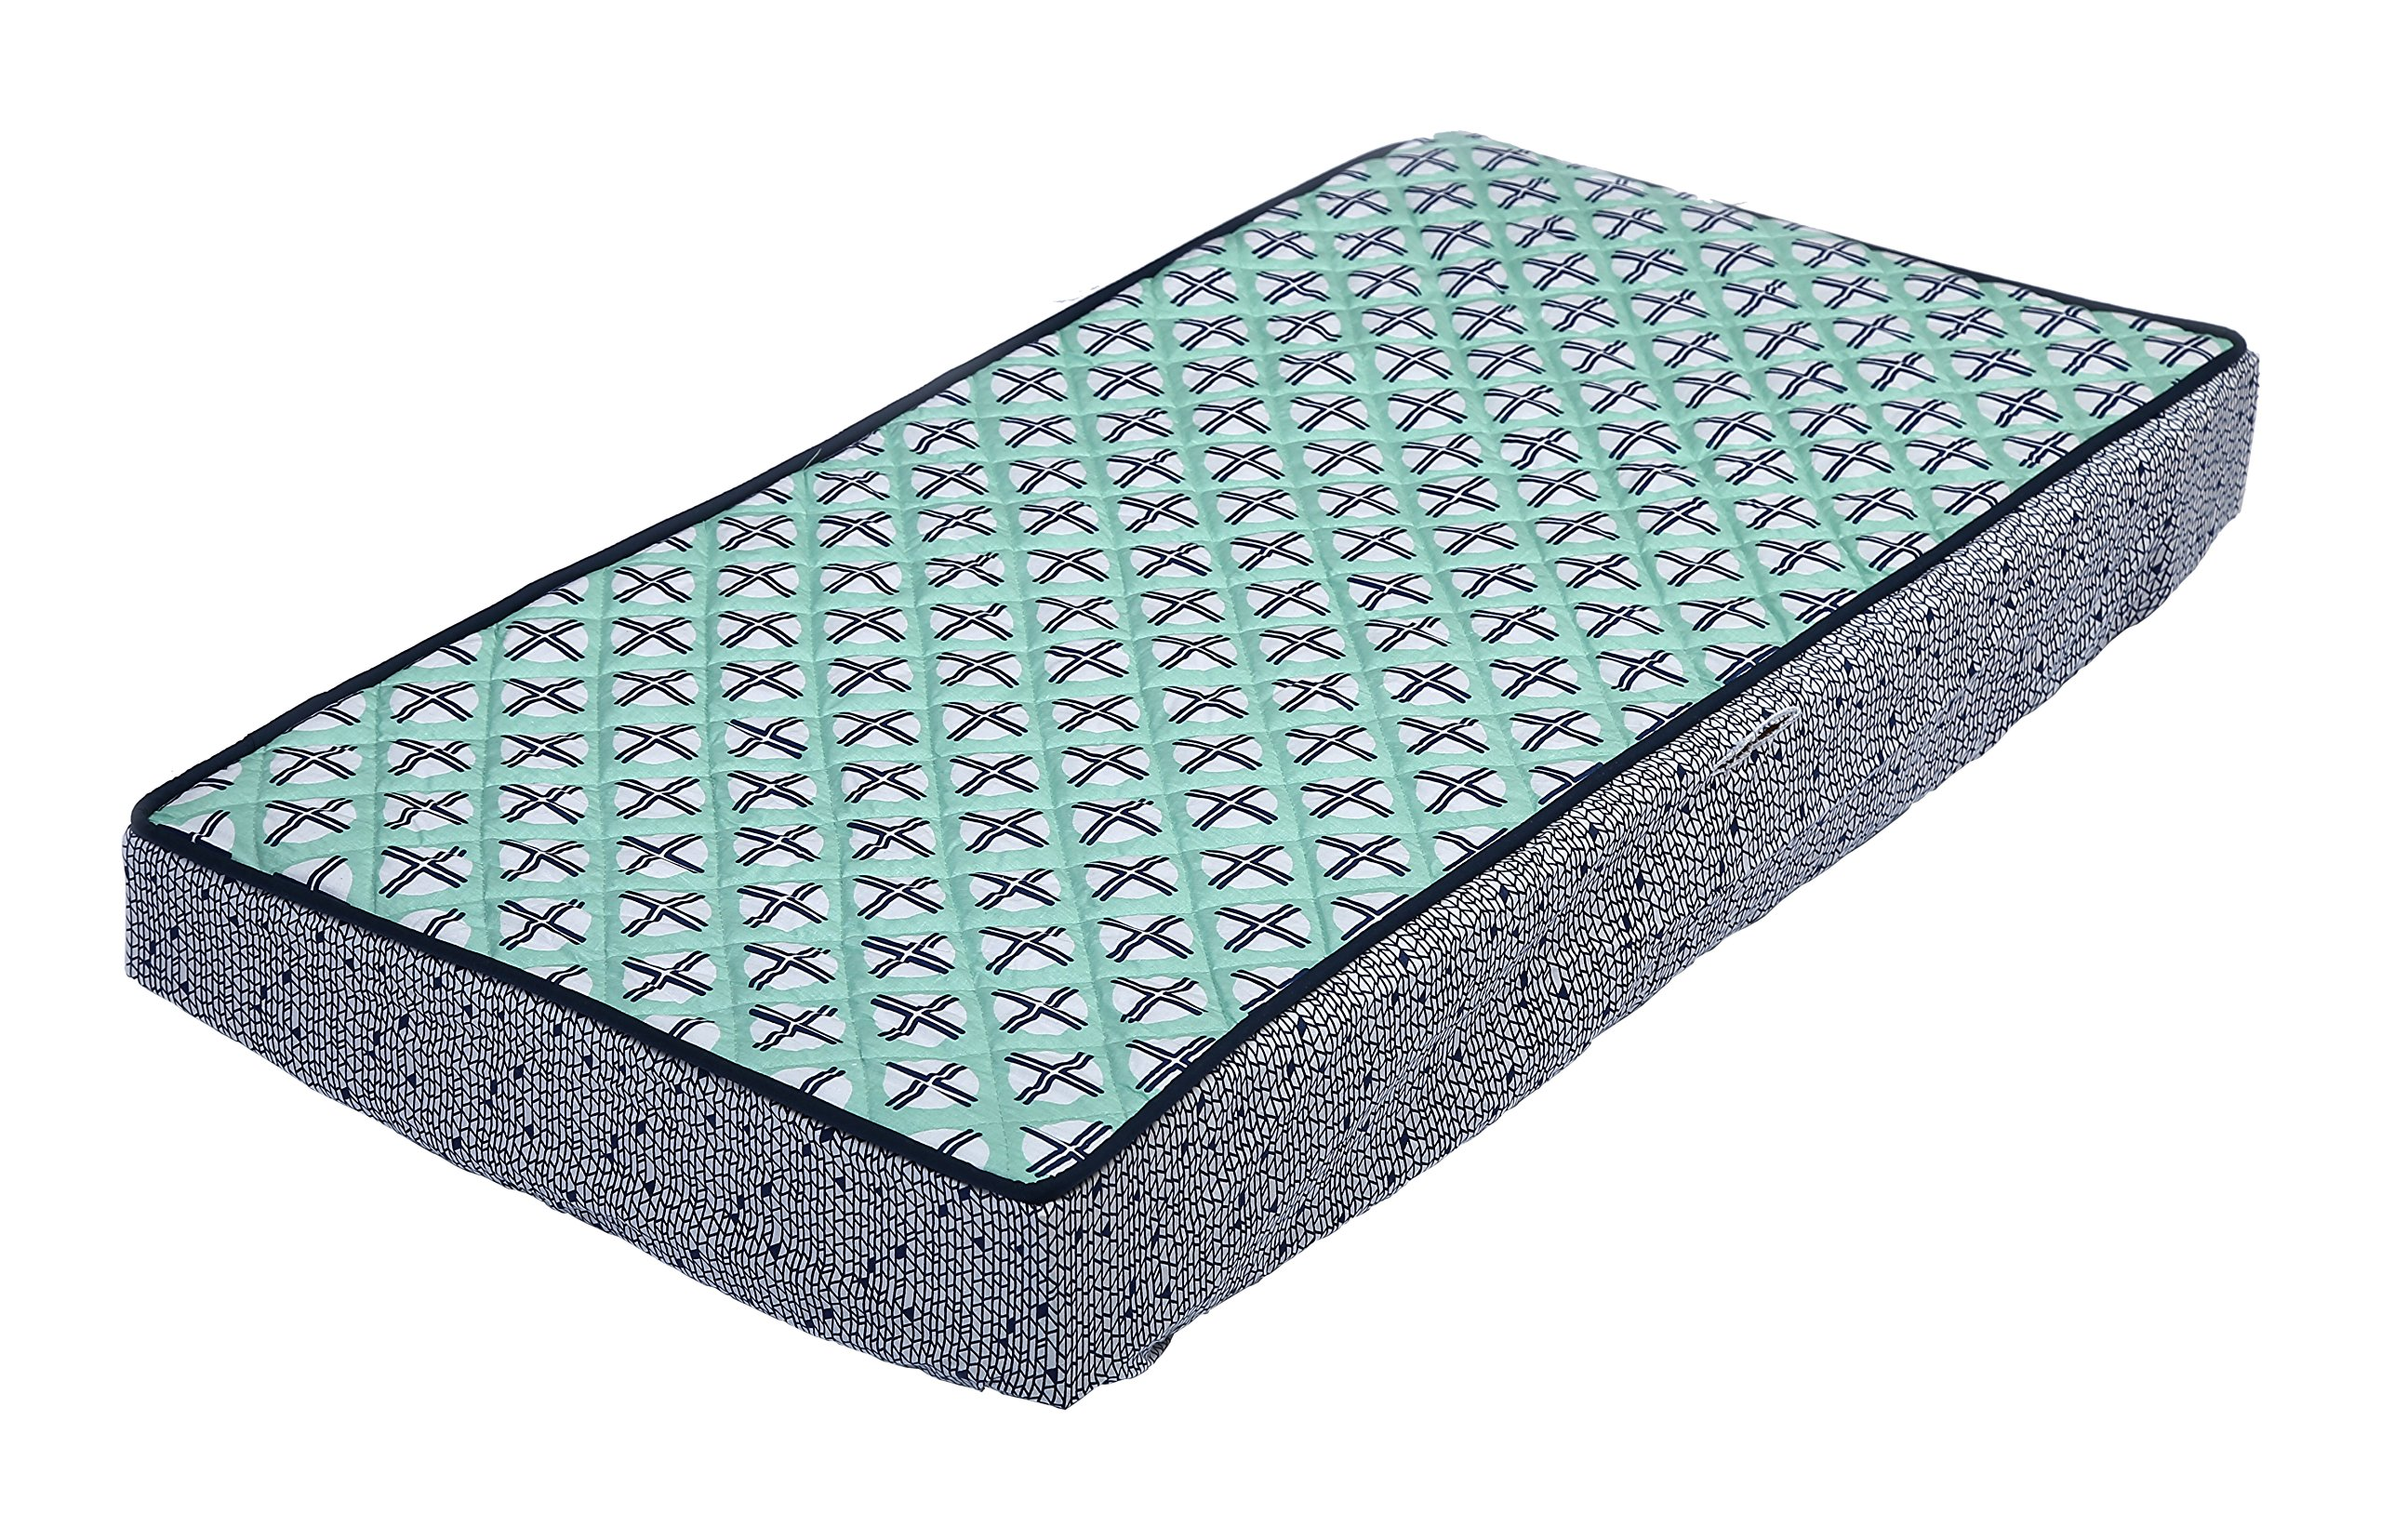 Bacati Noah Tribal Quilted Top Cotton Percale with Polyester Batting Diaper Changing Pad Cover, Mint/Navy Dot/Cross